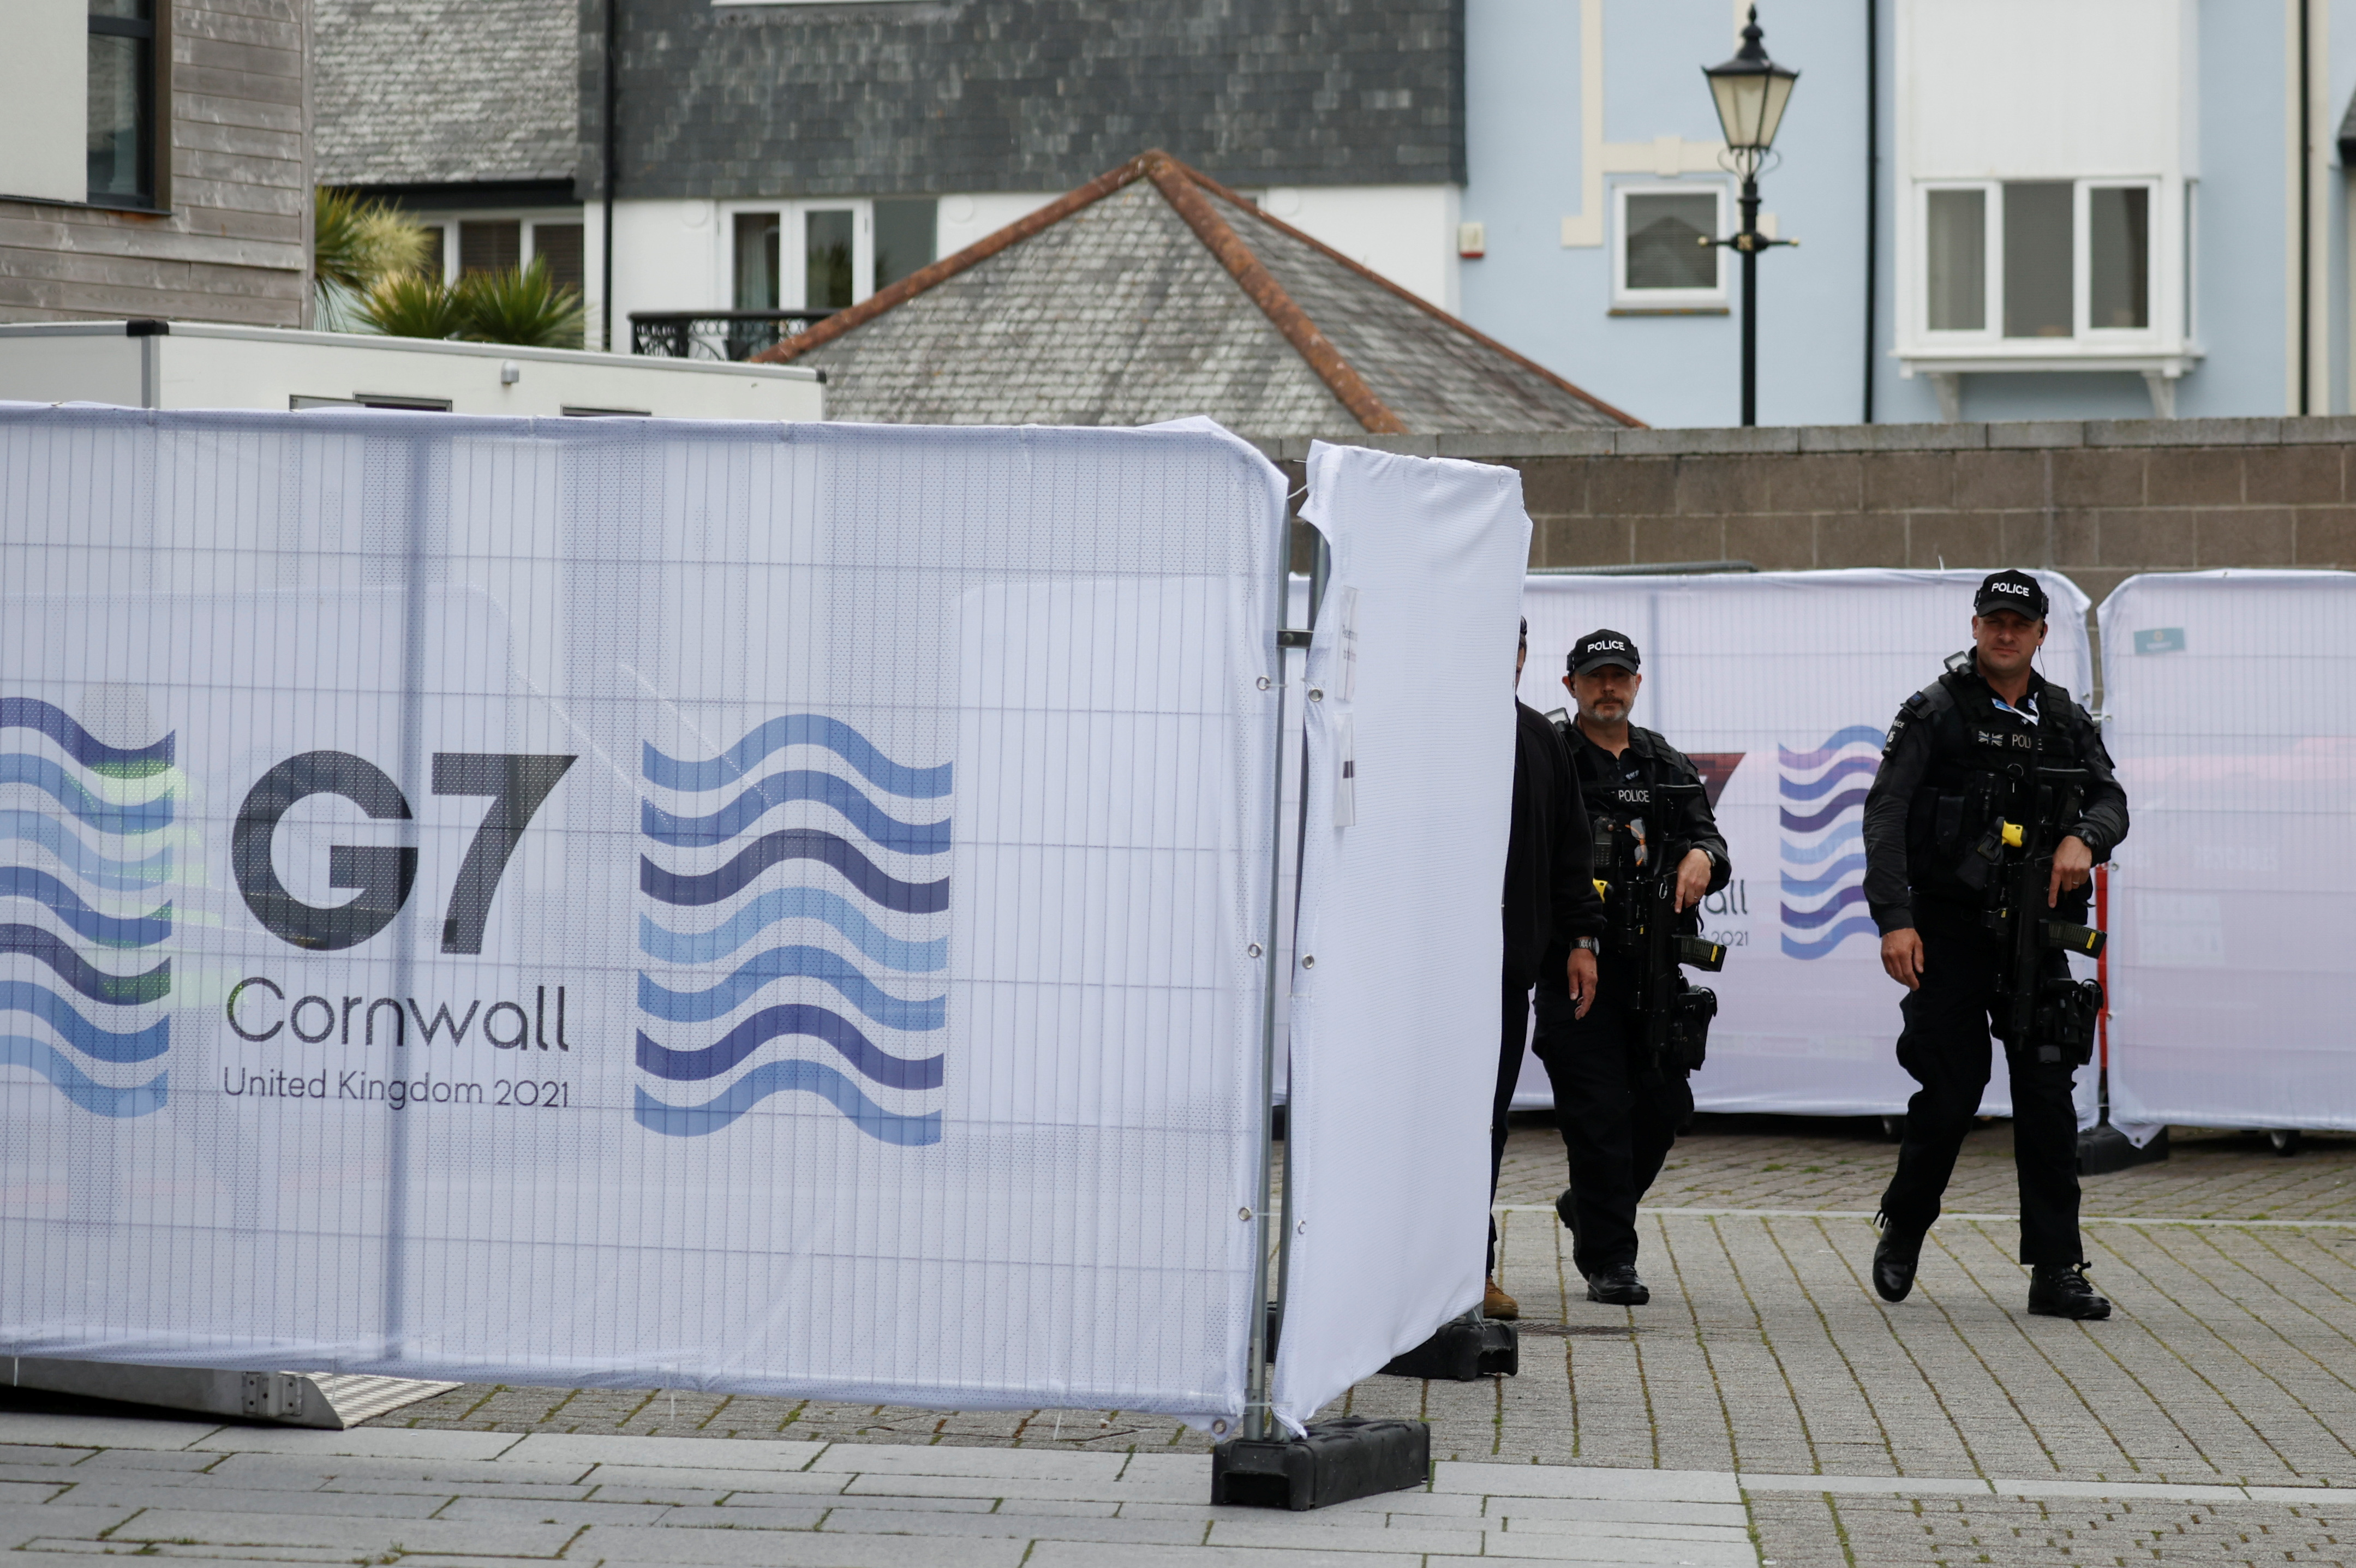 Armed police officers walk in Falmouth as preparations are underway for the G7 leaders summit, Cornwall, Britain, June 10, 2021. REUTERS/Phil Noble